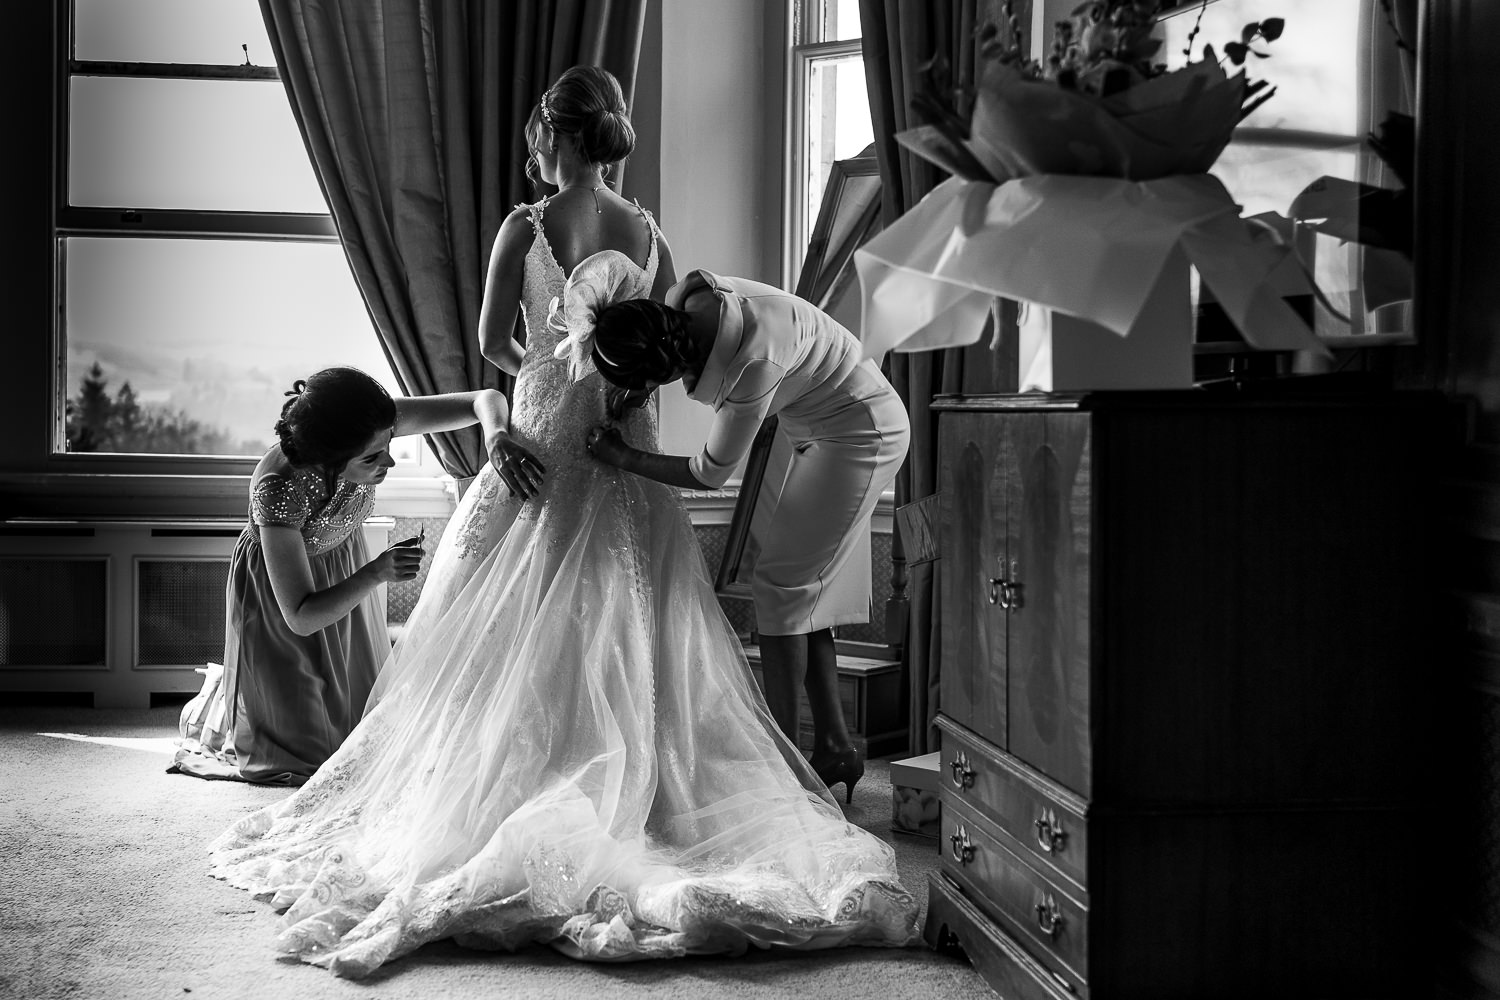 Bride having her dress put on by bridesmaid and mother of bride